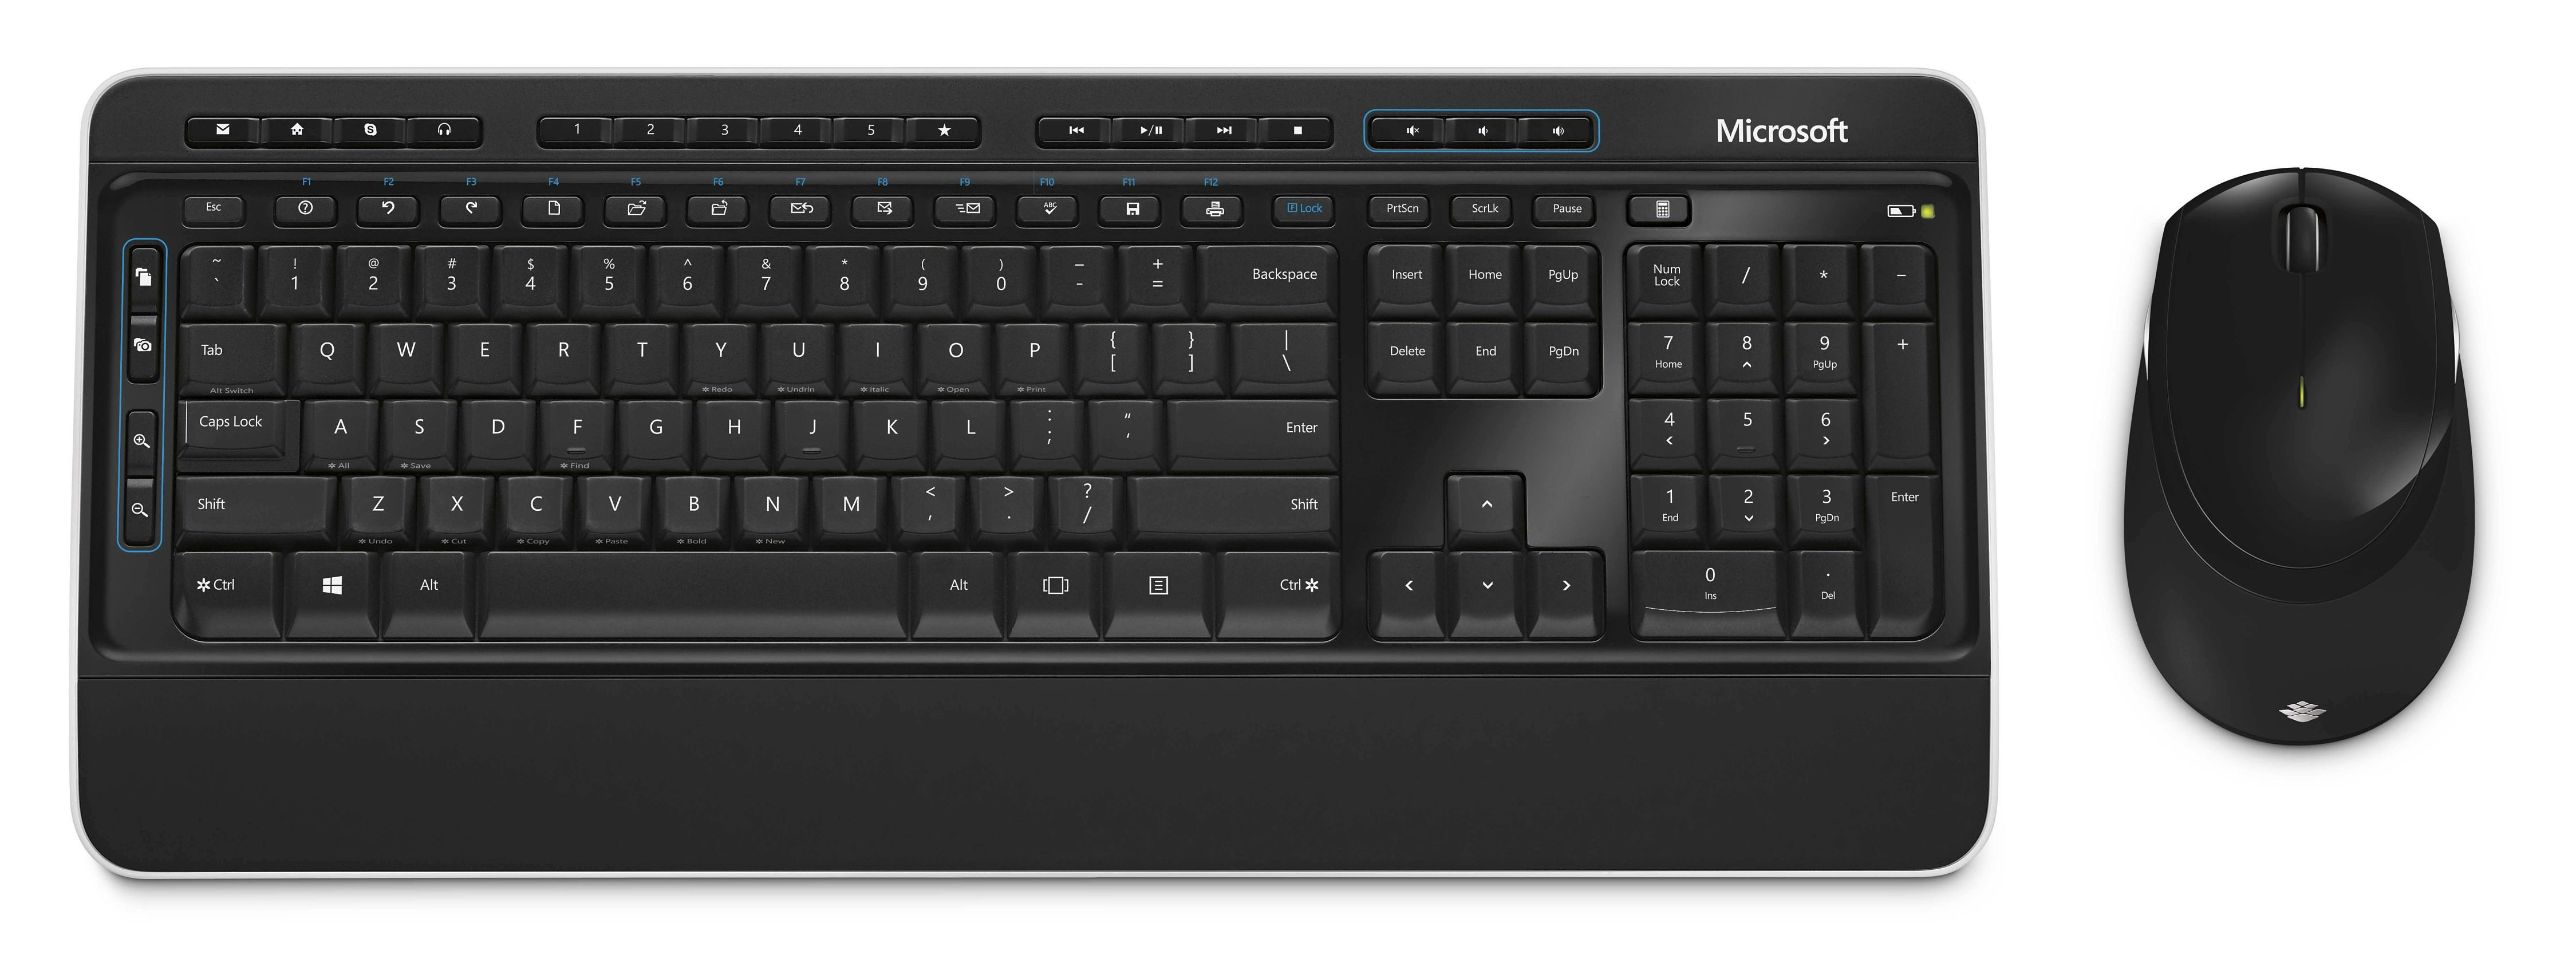 Microsoft Keyboard und Maus »Wireless Desktop 3050 «